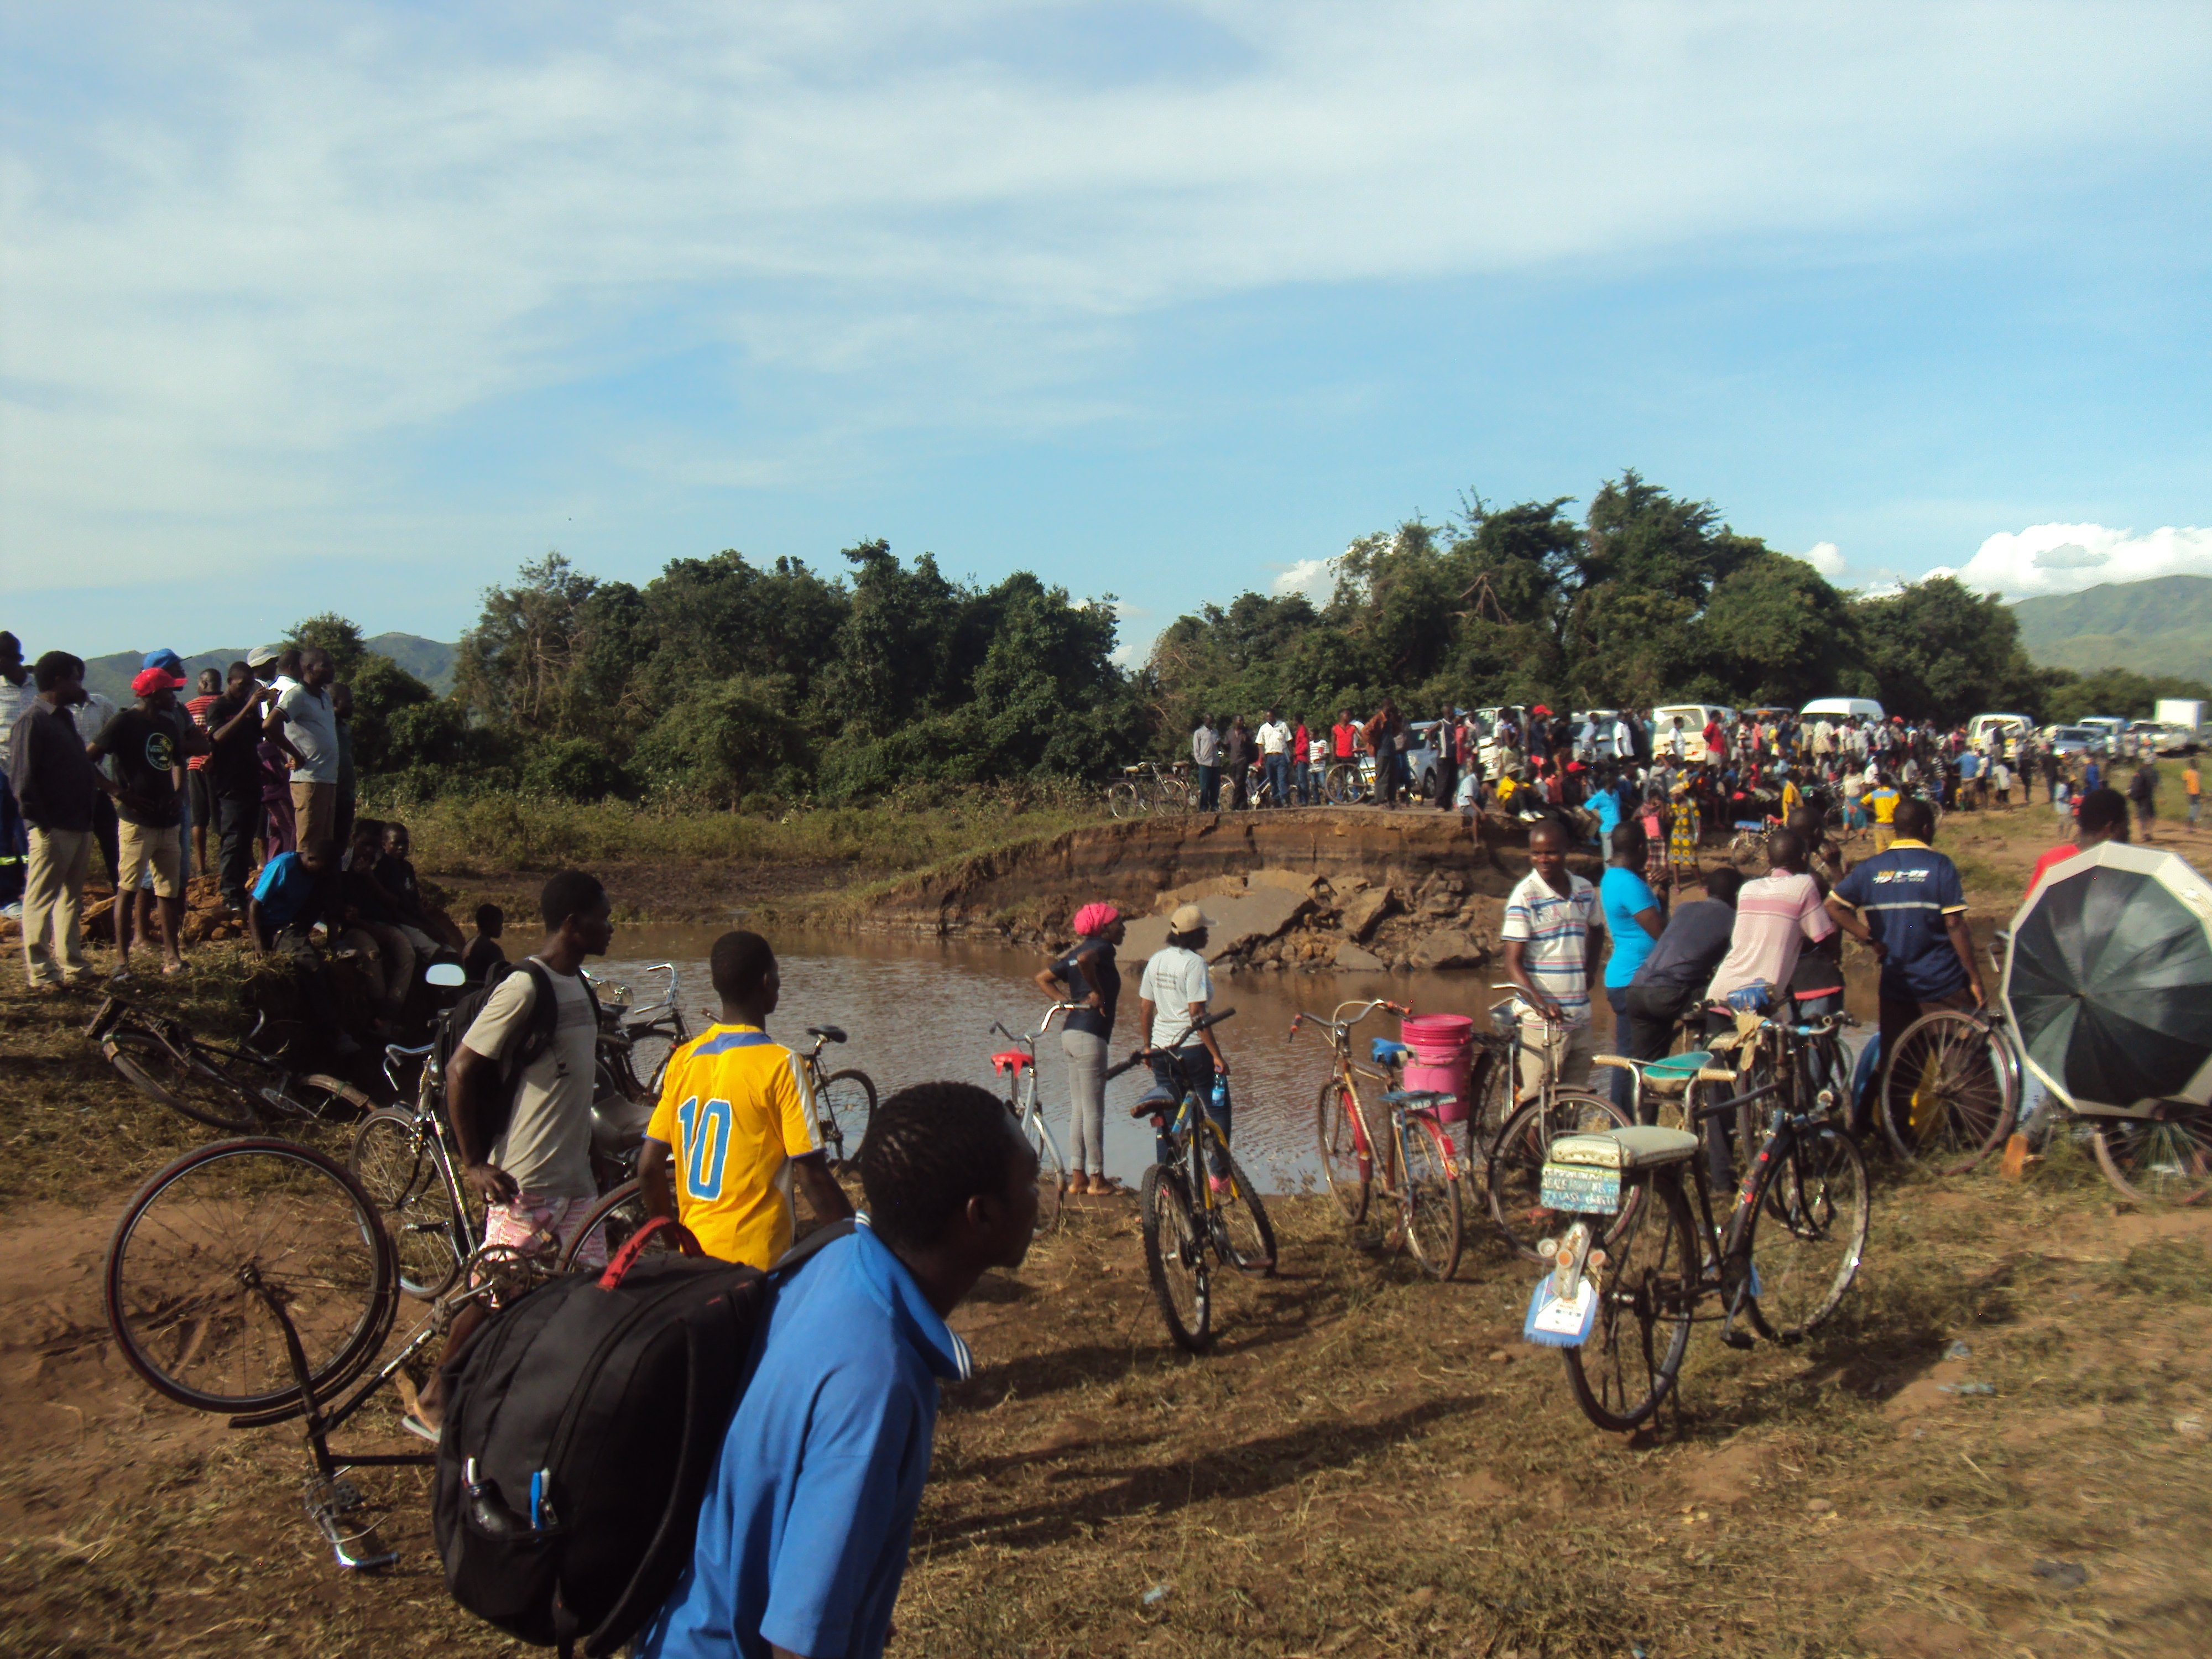 Crowd of people pushing bicycles and carrying goods across a muddy landscape